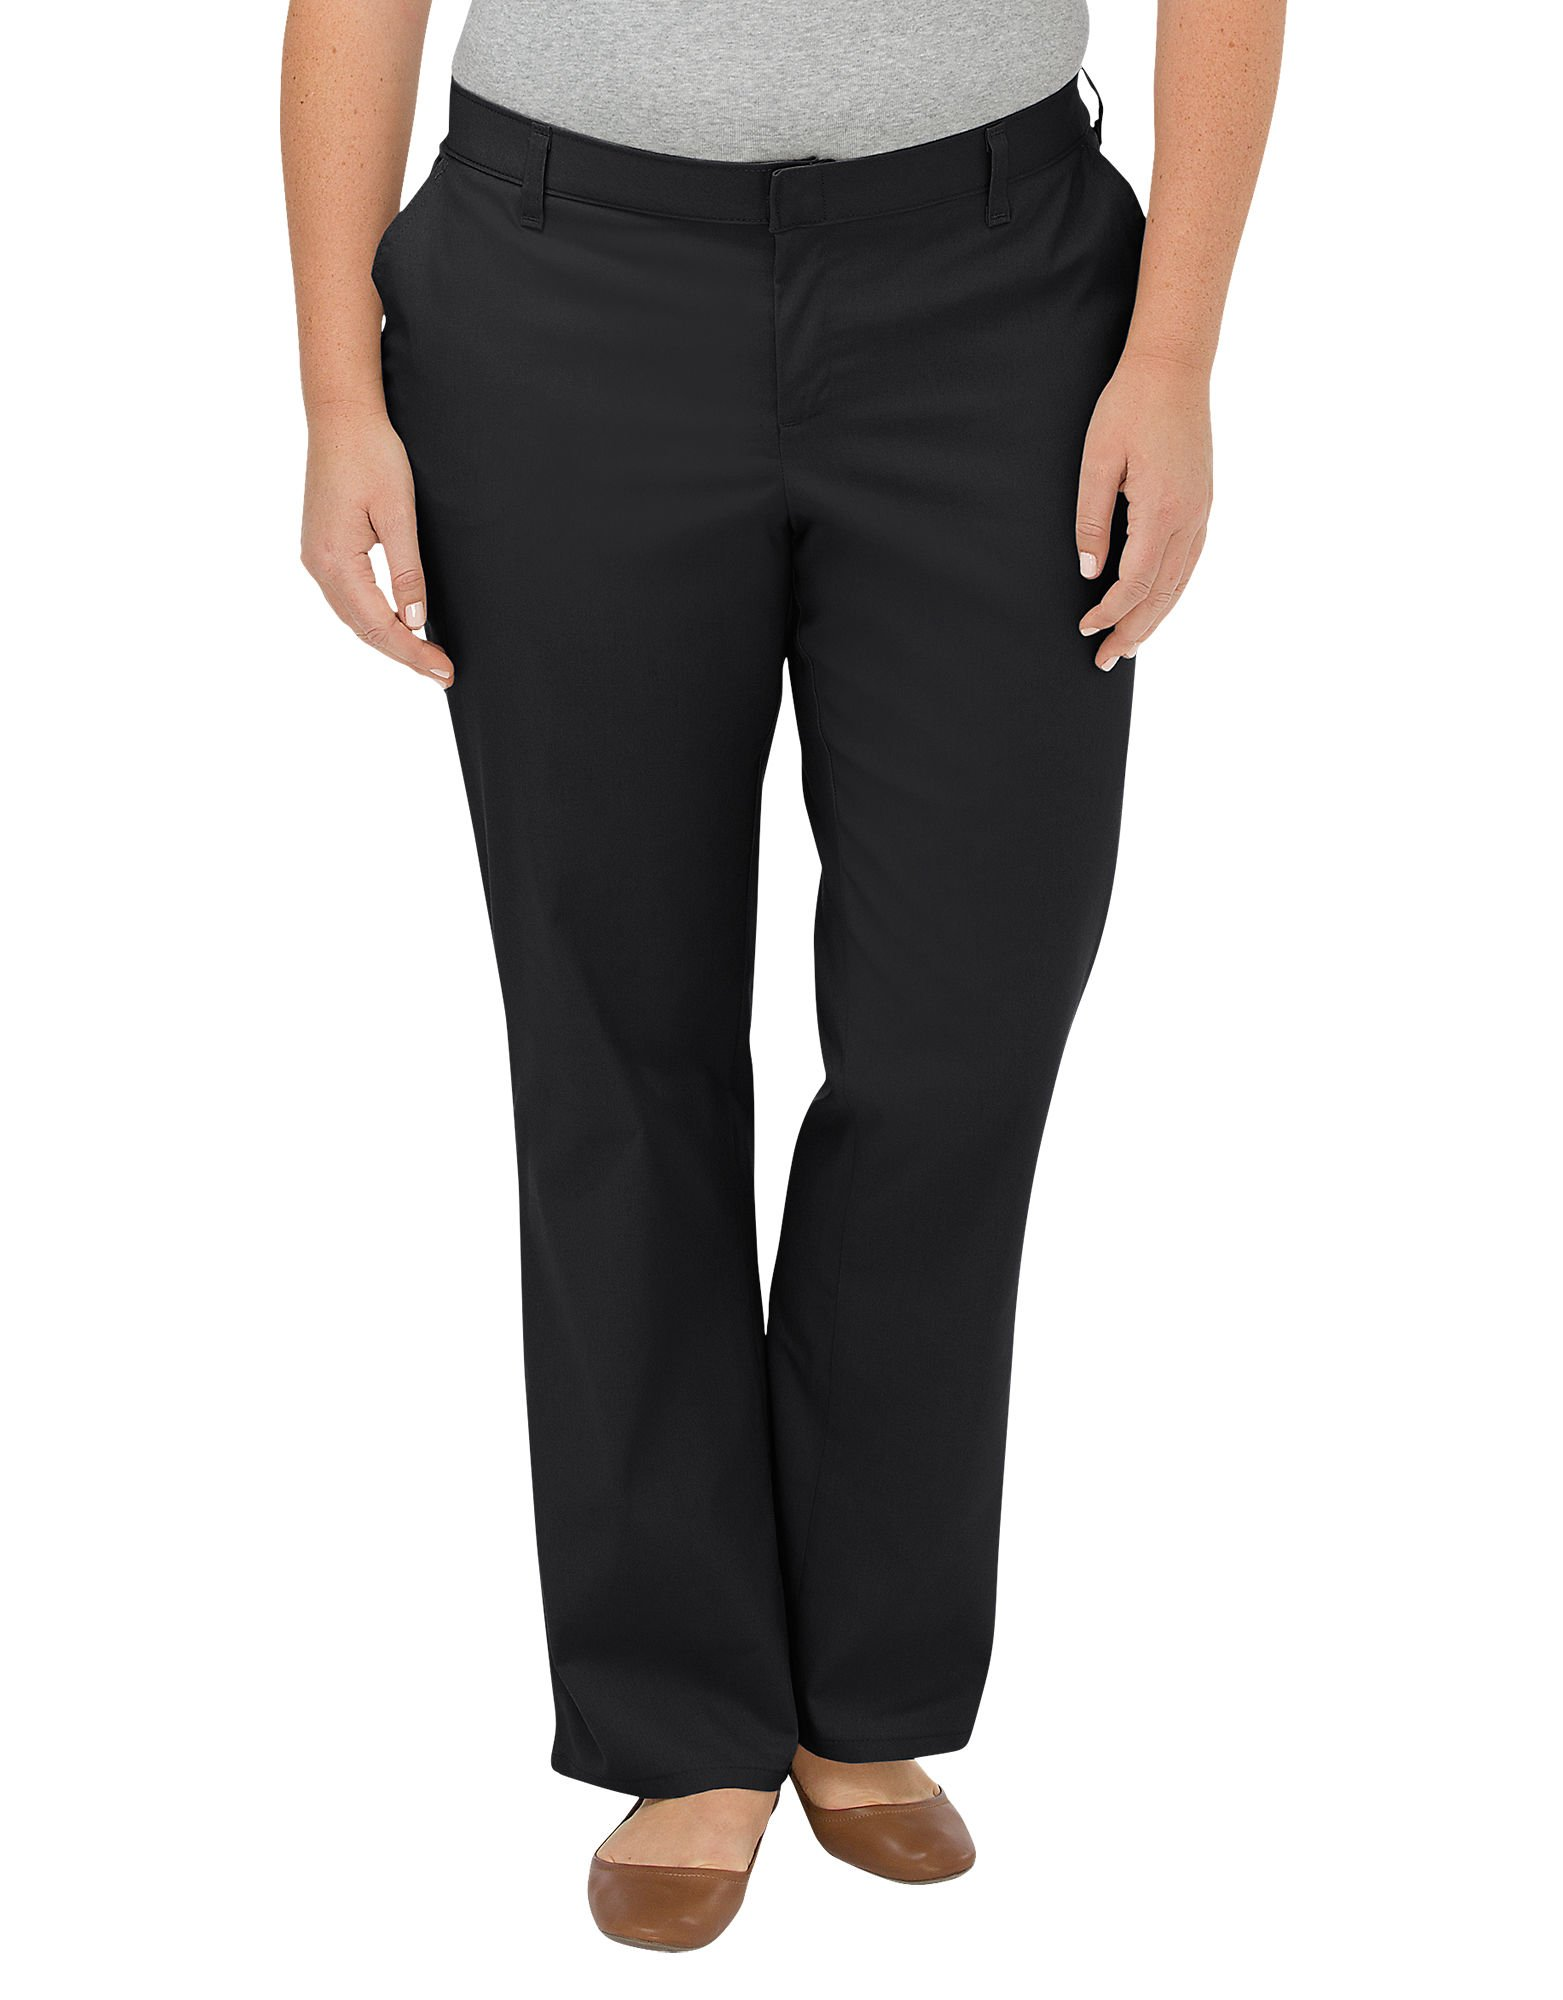 Dickies Women's Plus-Size Wrinkle-Resistant Flat Front Twill Pant with Stain Release Finish